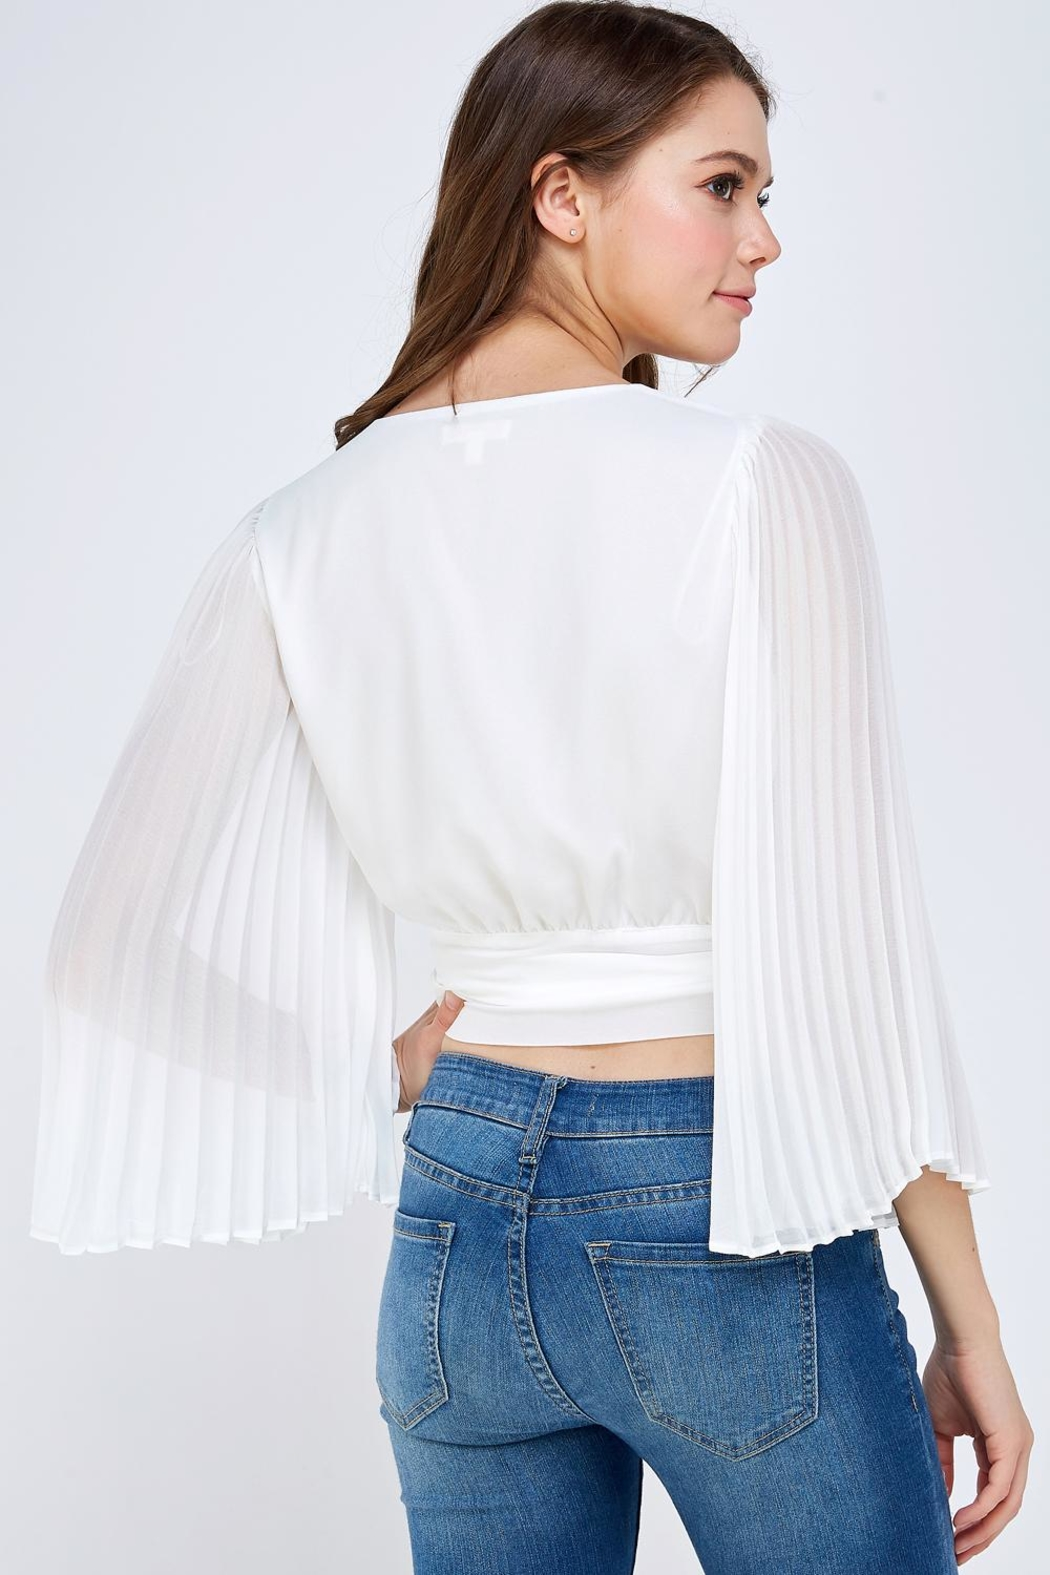 luxxel White Pleated Blouse - Back Cropped Image